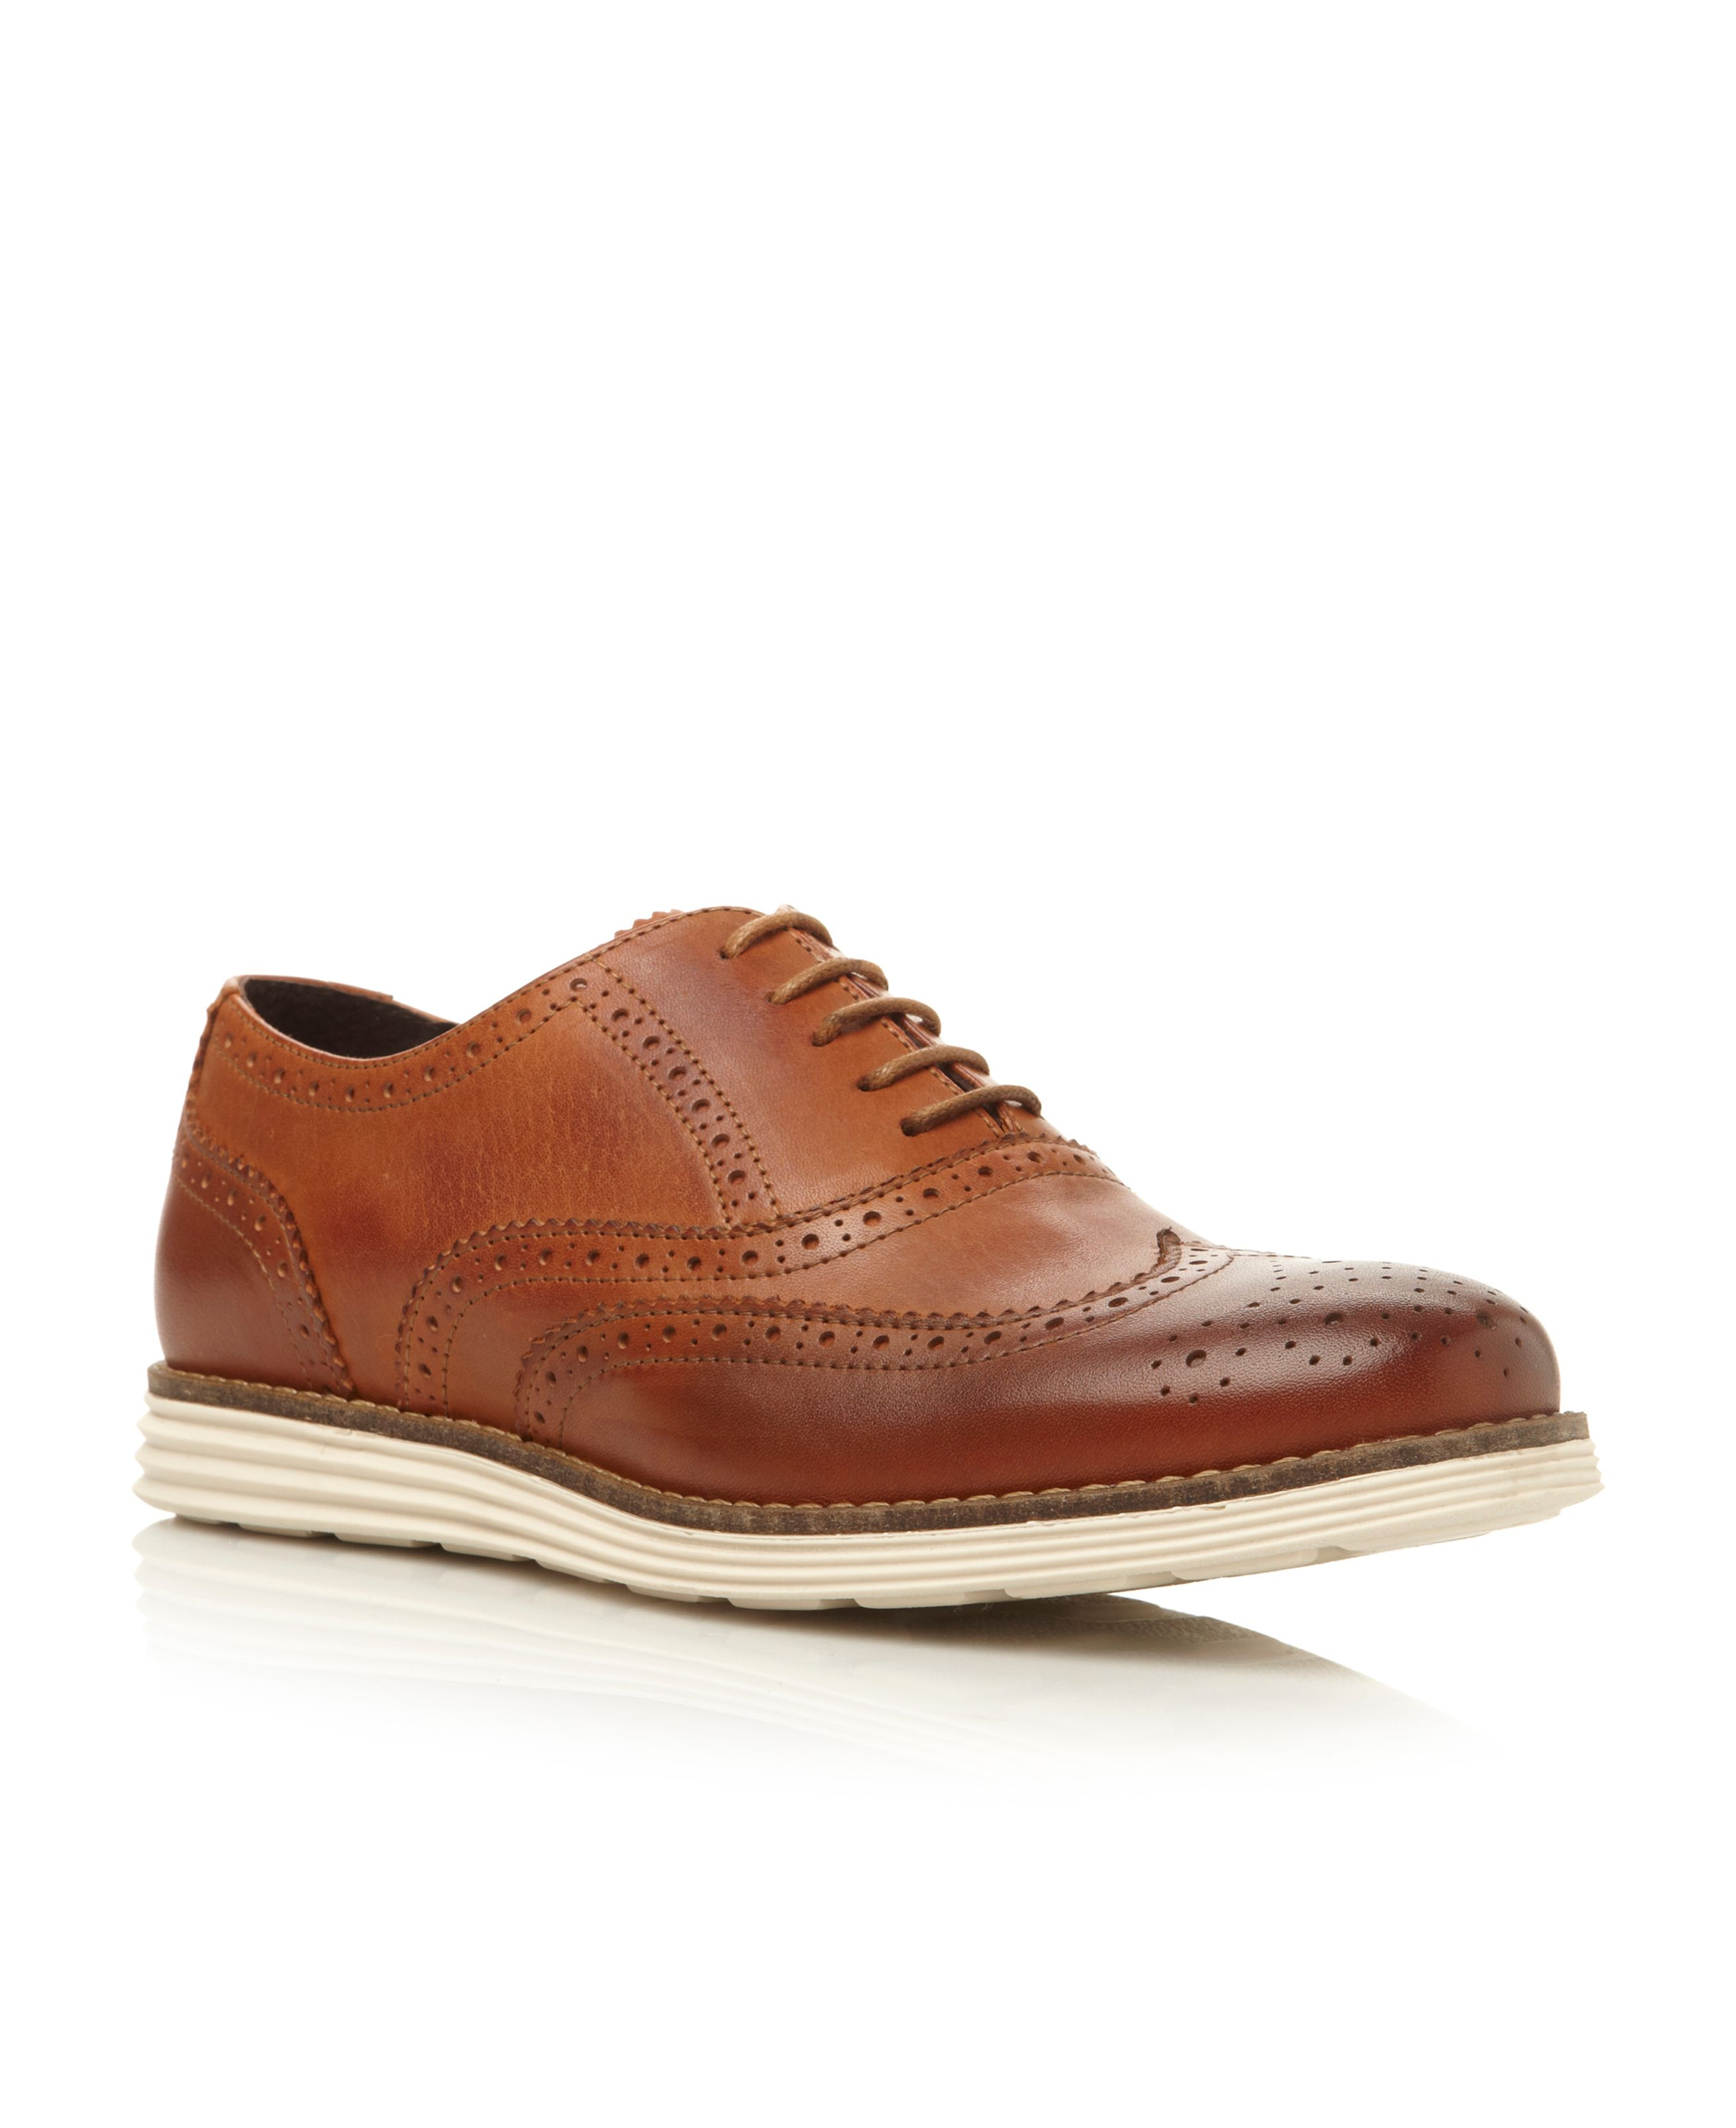 Dune Brown Oxford Shoes